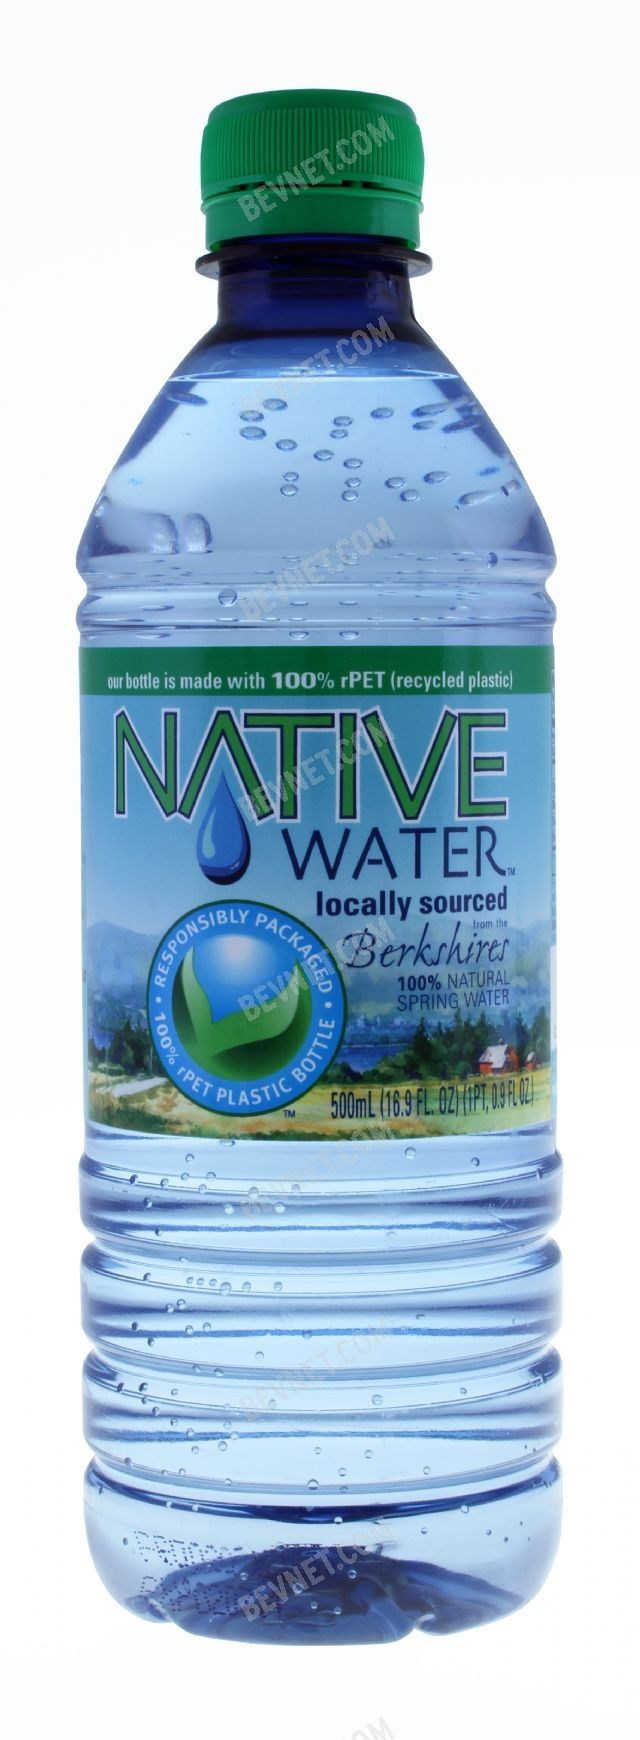 Native Water: